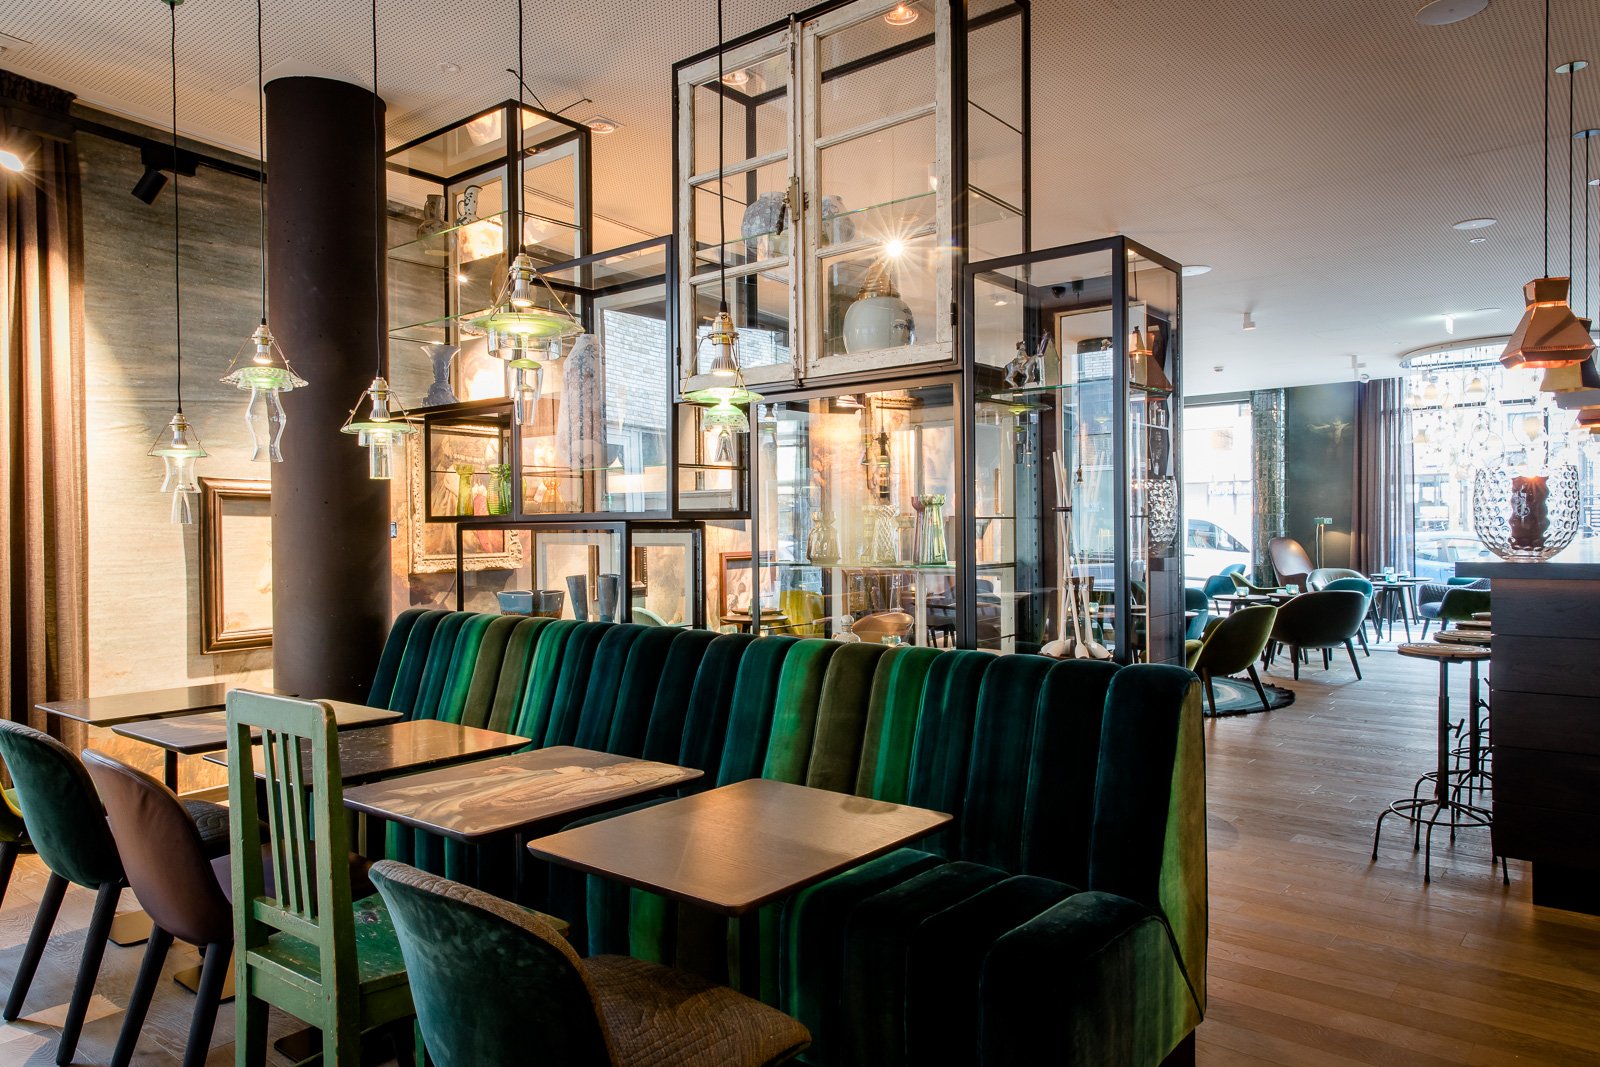 Hotel Motel One Amsterdam-Waterlooplein